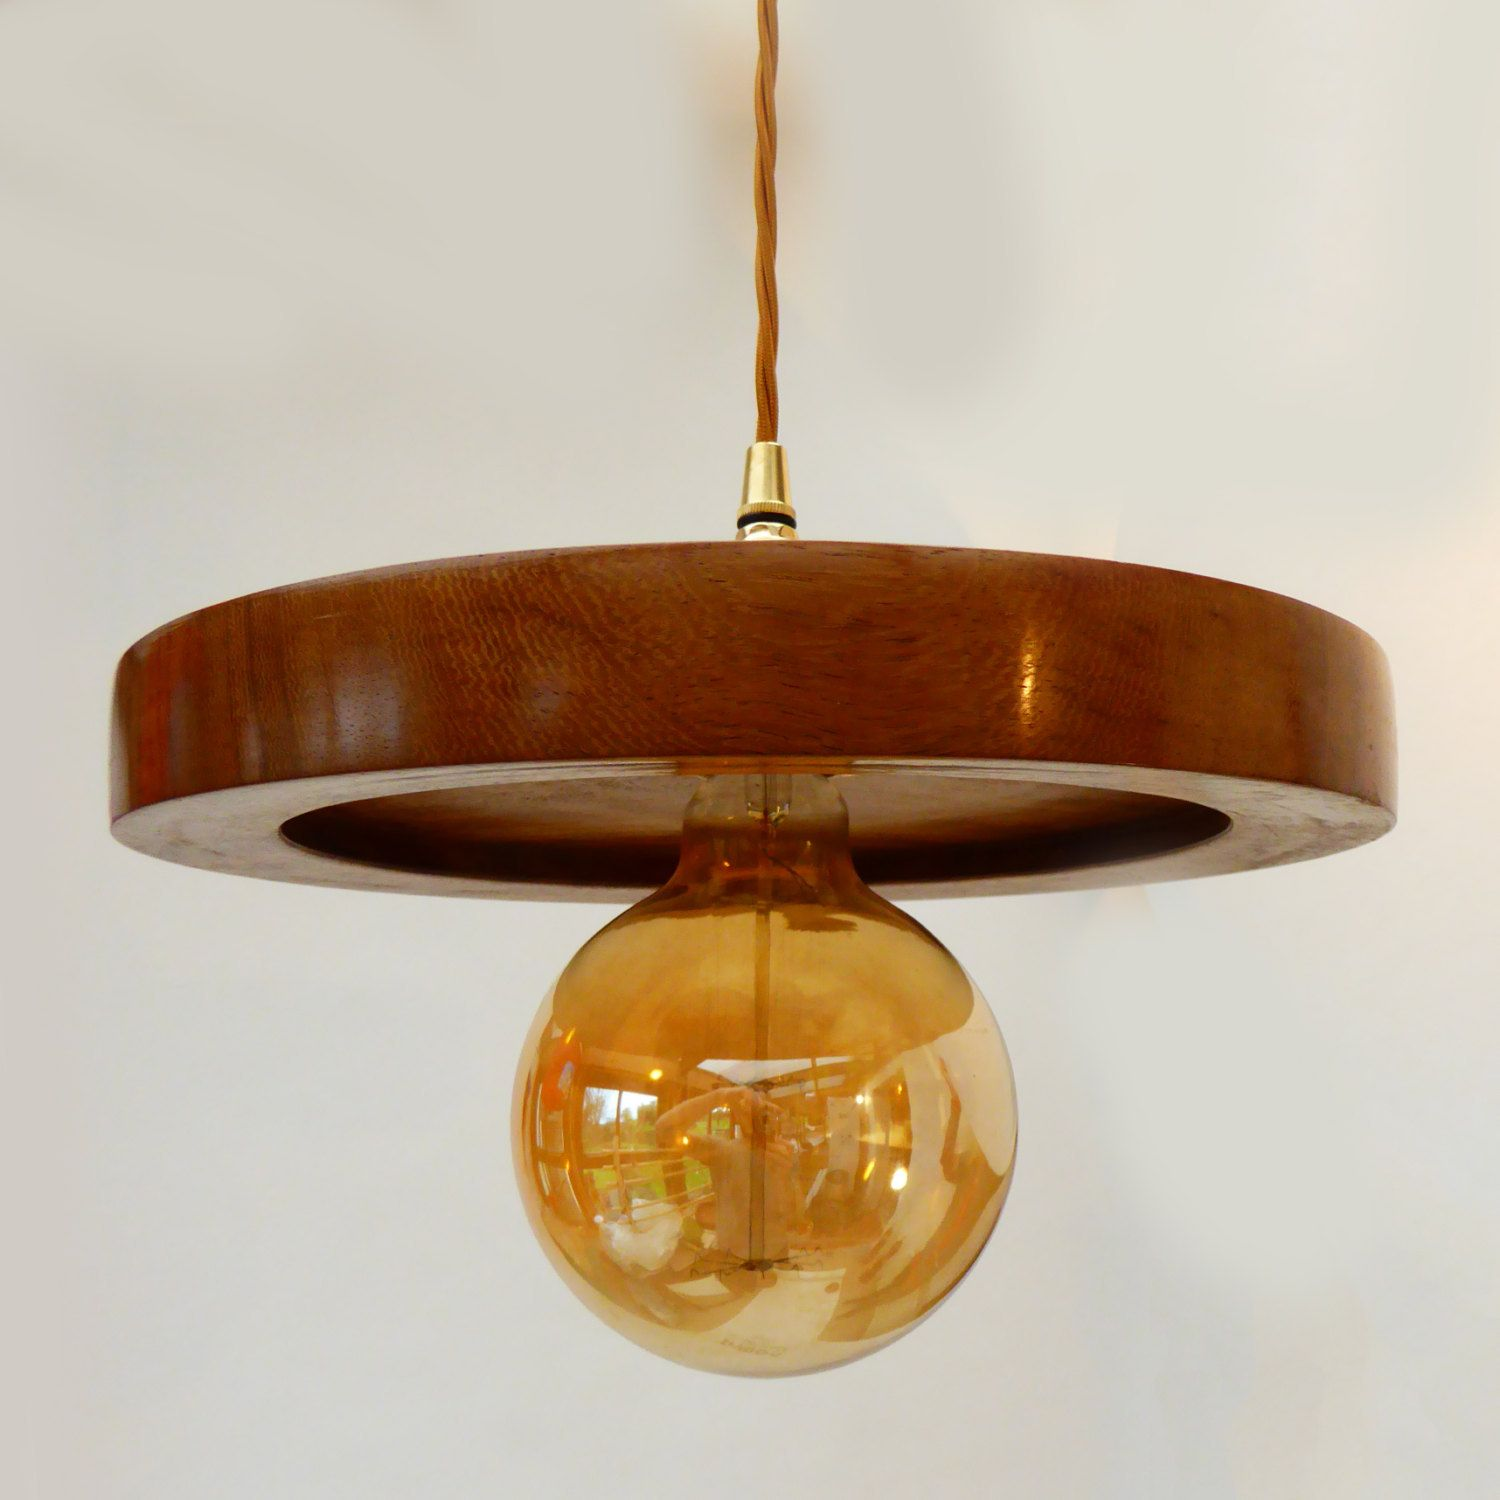 Globe light with wooden diffuser globe lights diffusers and globe